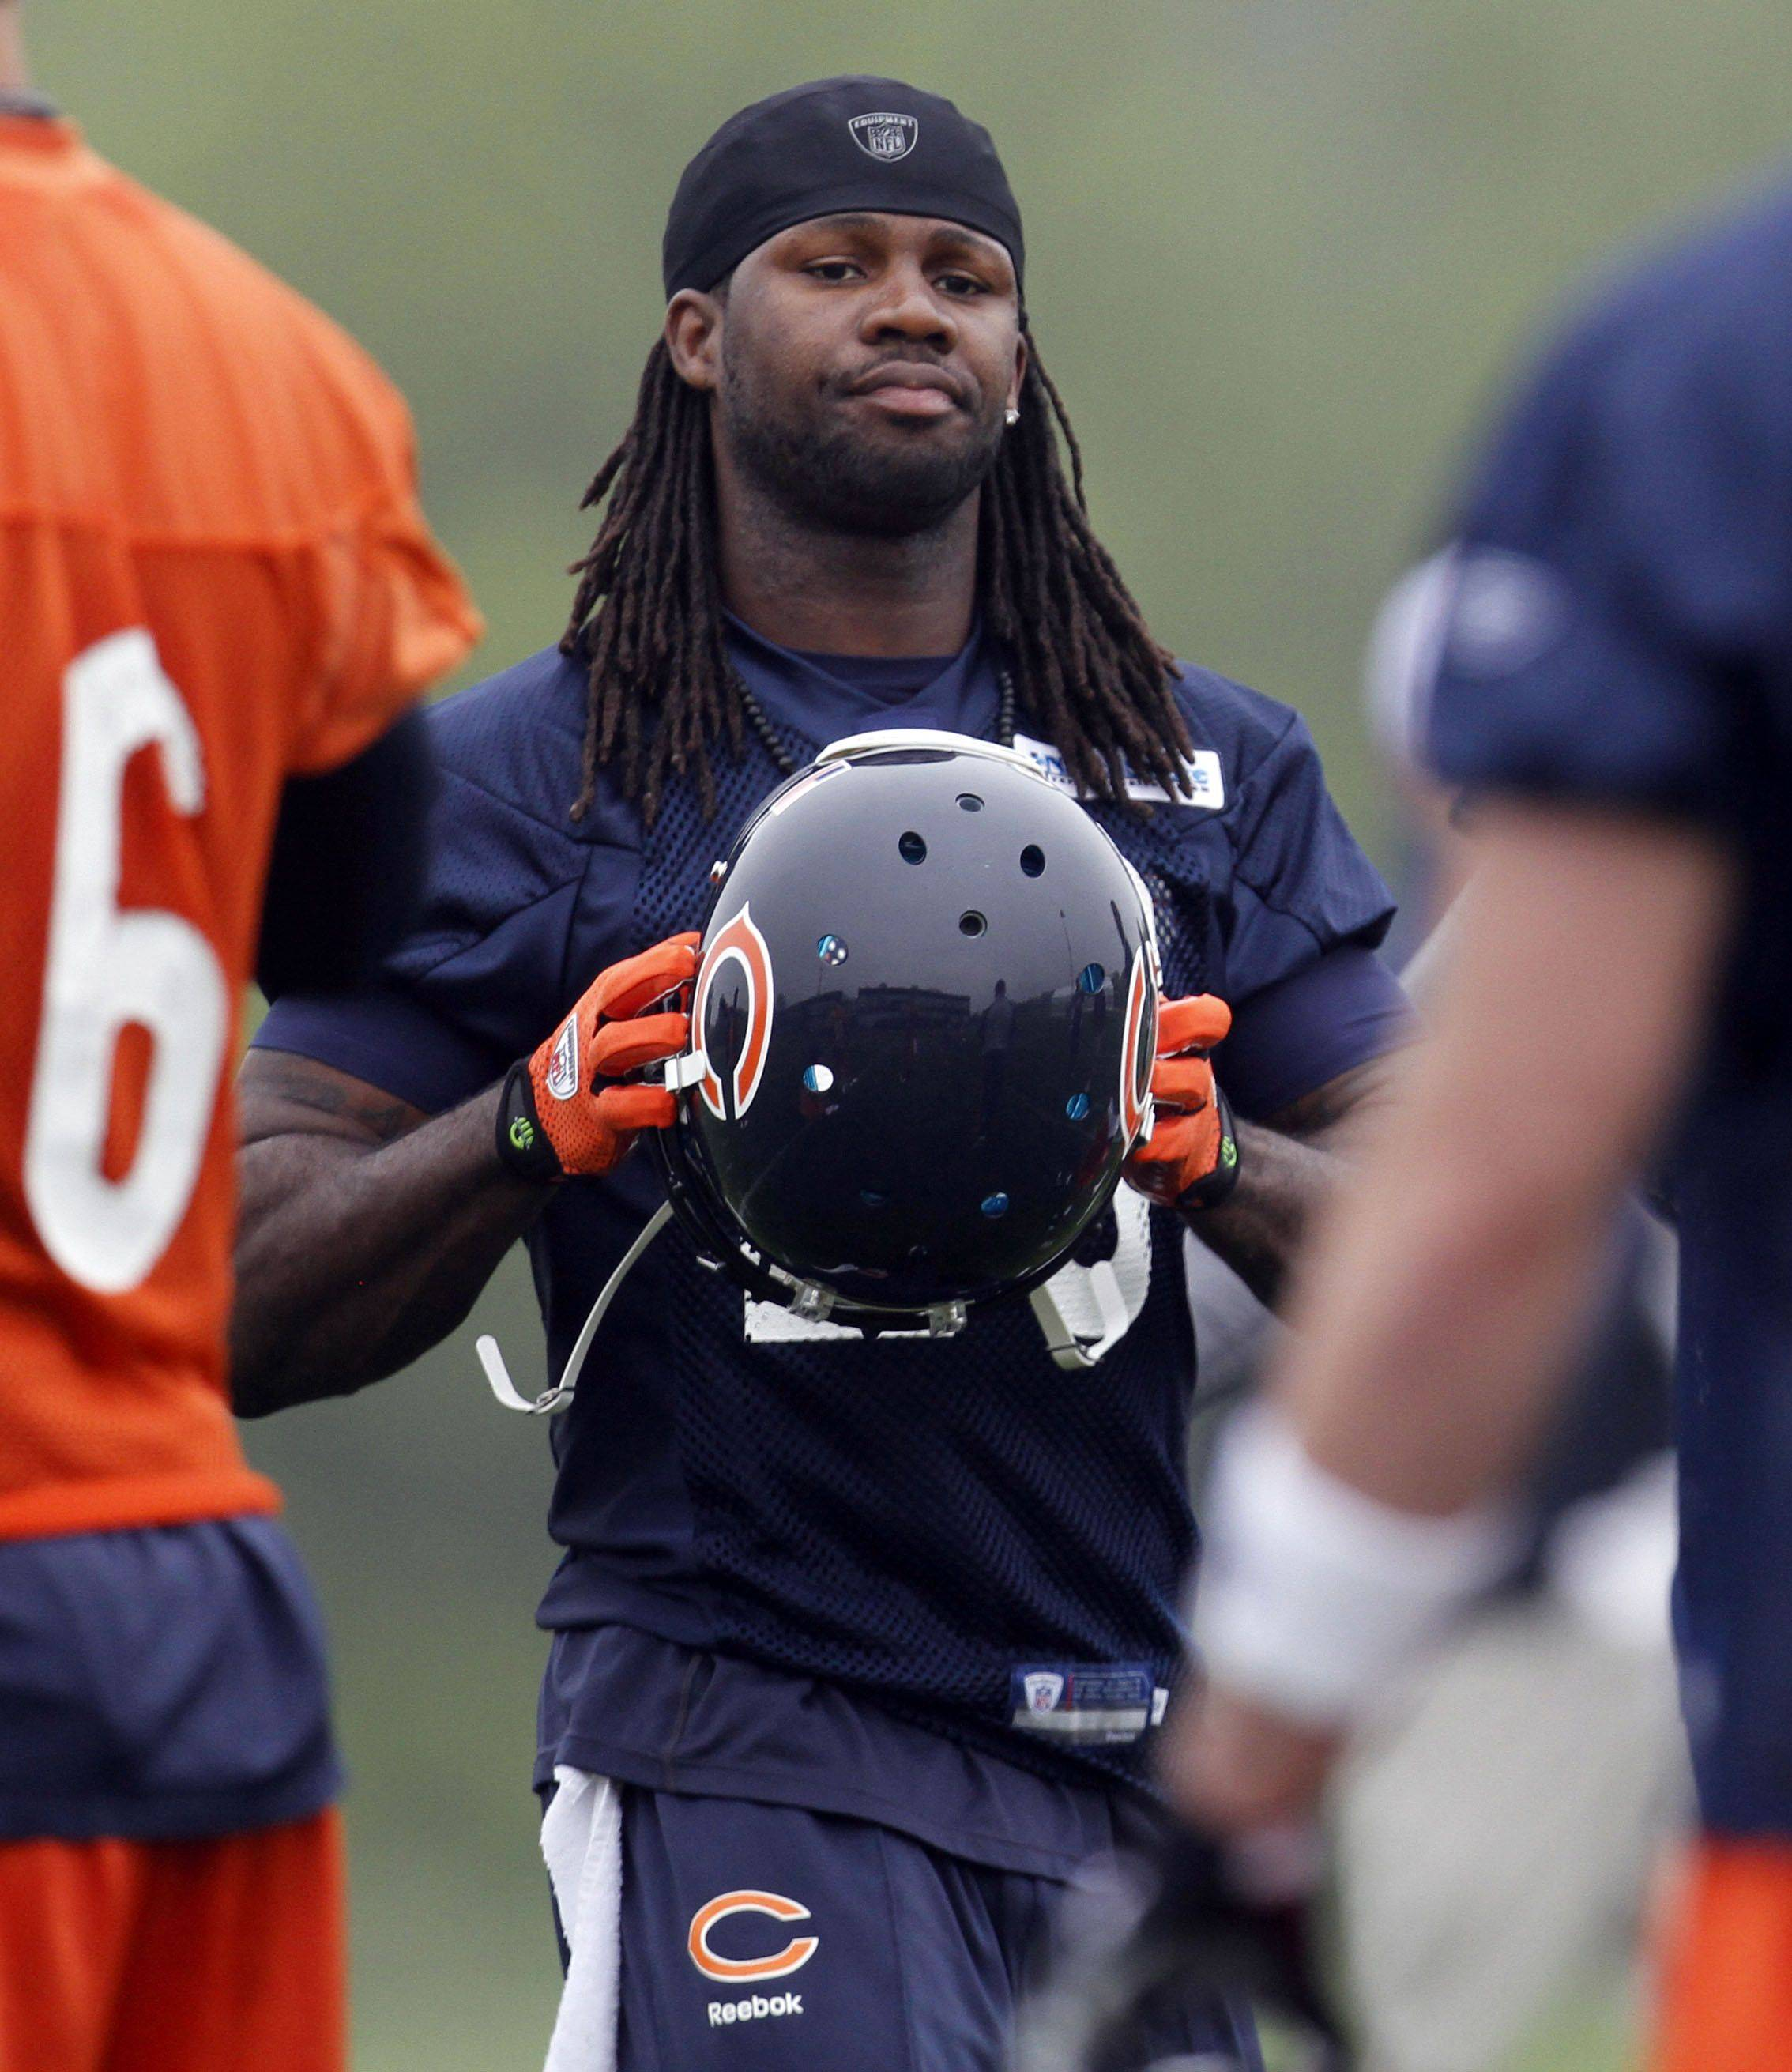 A Mount Prospect man pleaded guilty Thursday to slapping Bears wide receiver Devin Hester in October.